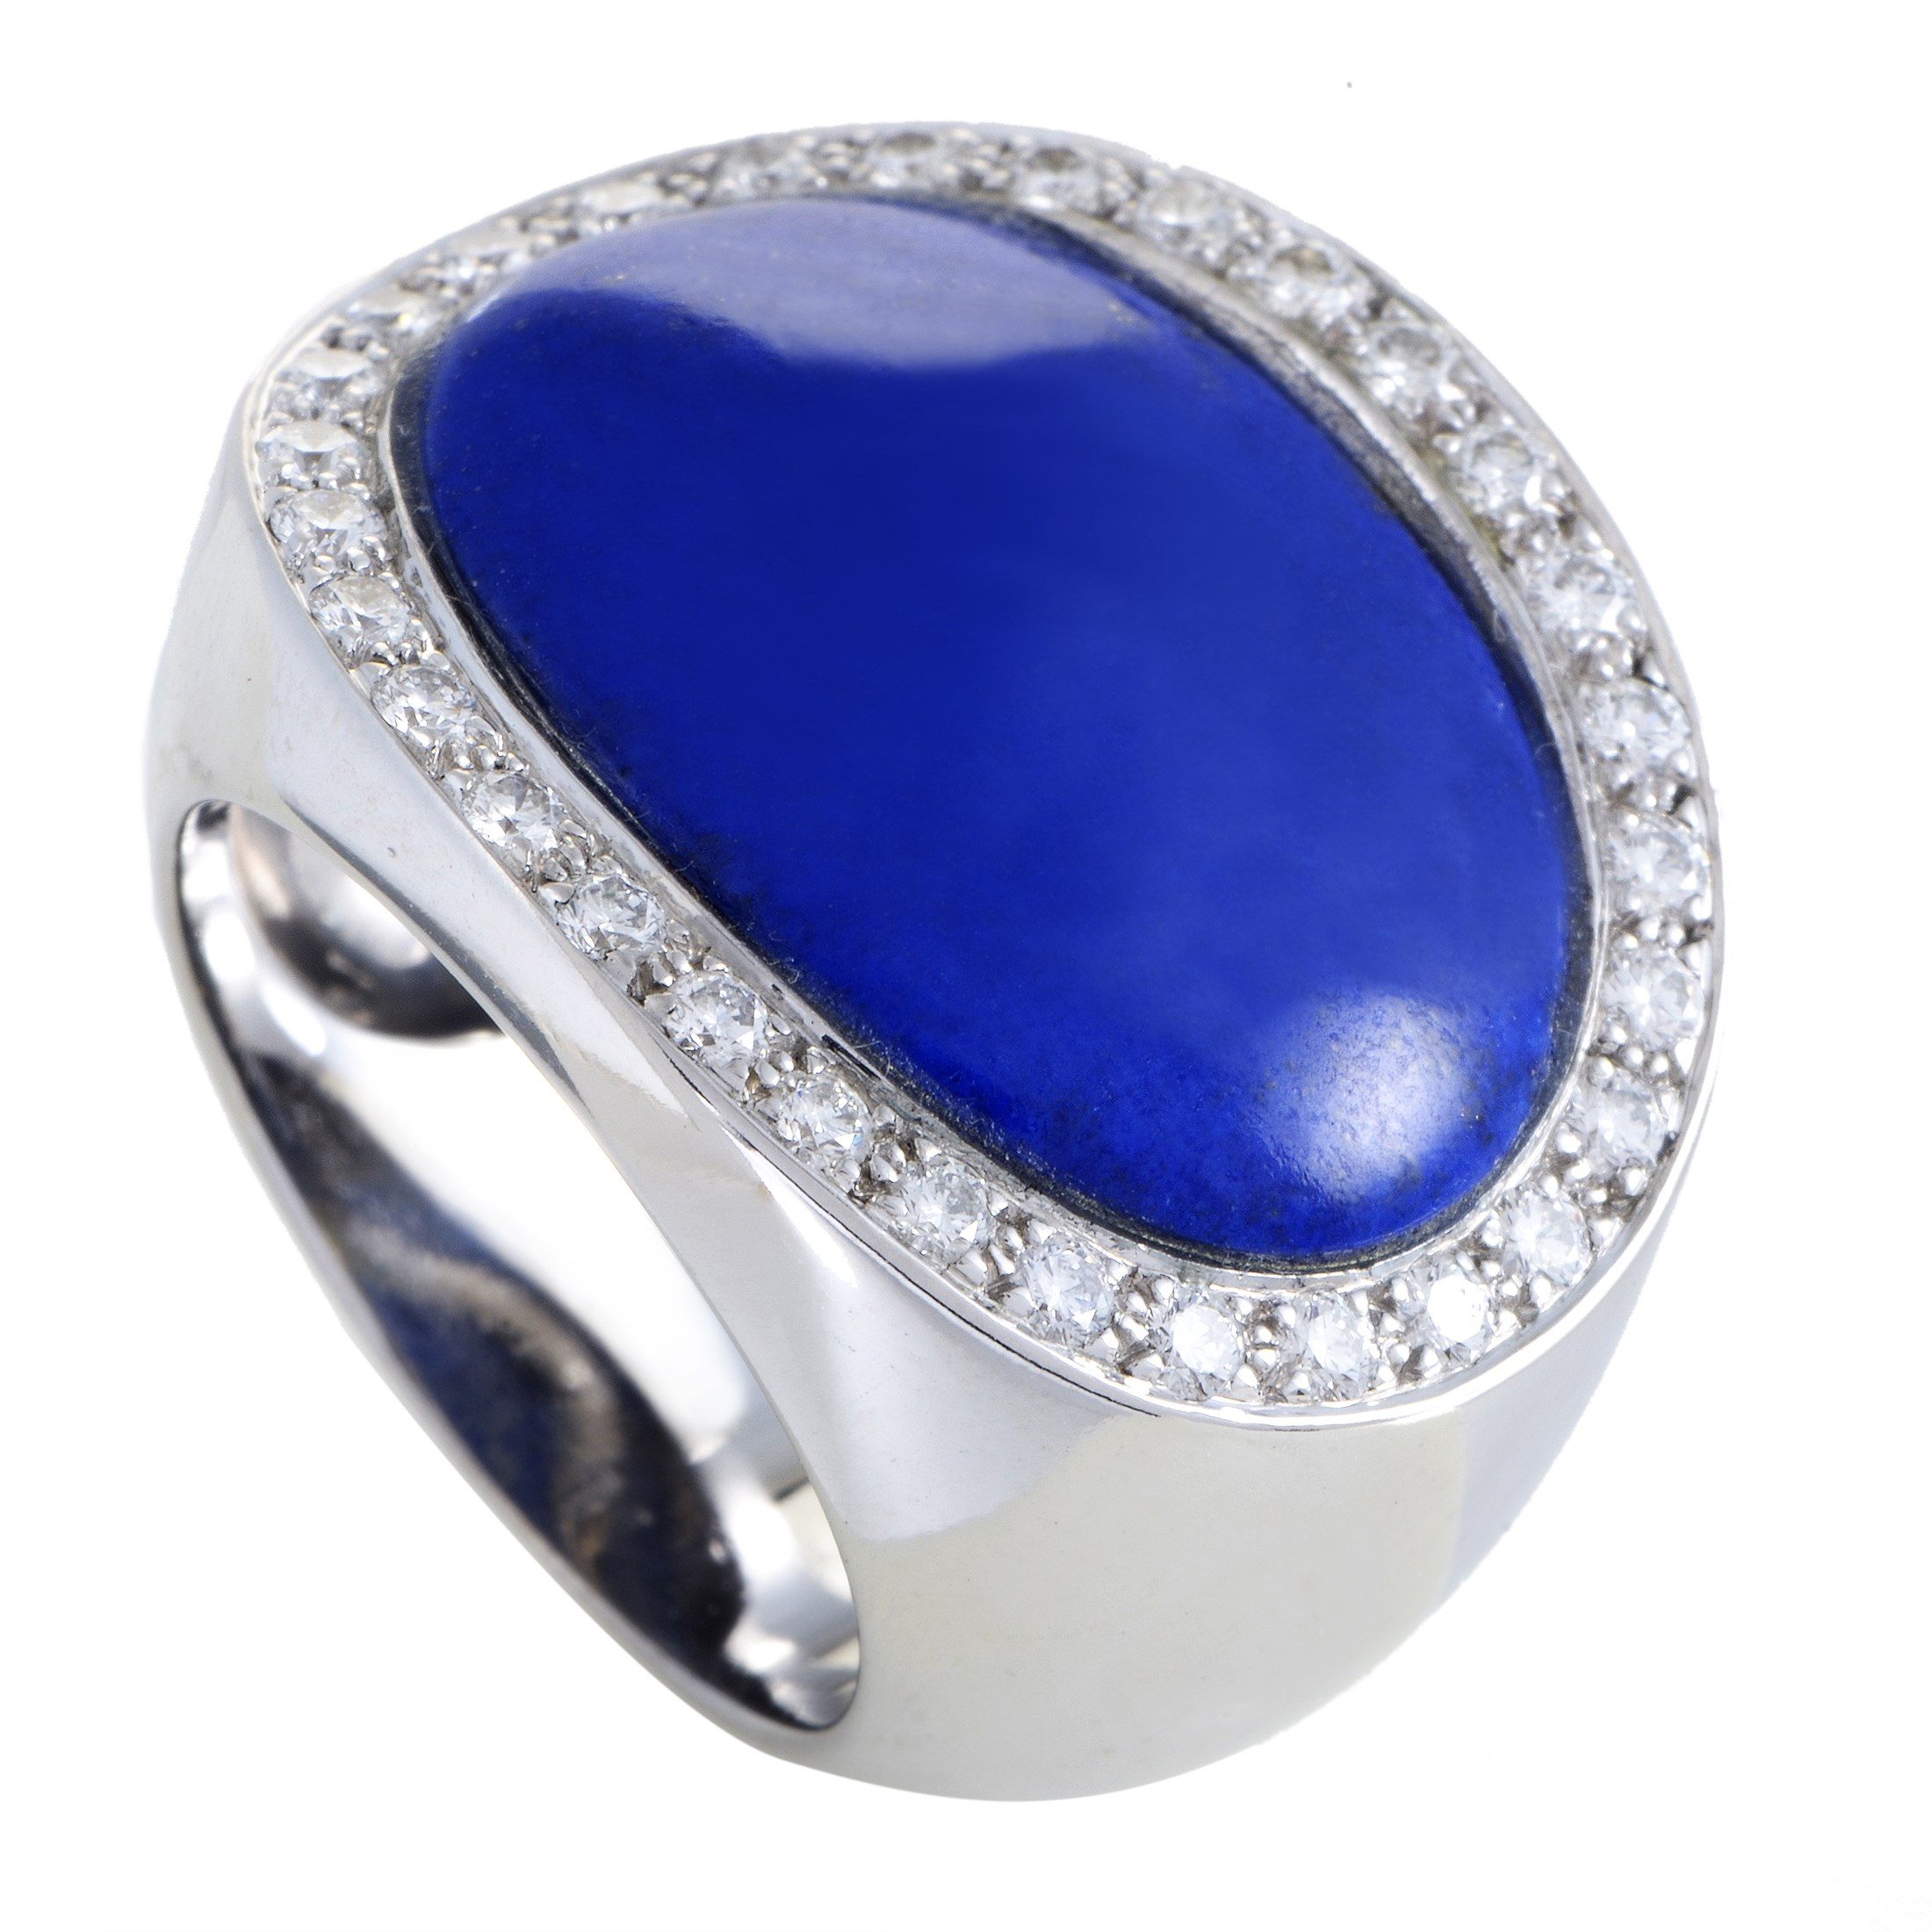 Van Cleef & Arpels Women's 18K White Gold Diamond & Lapis Ring